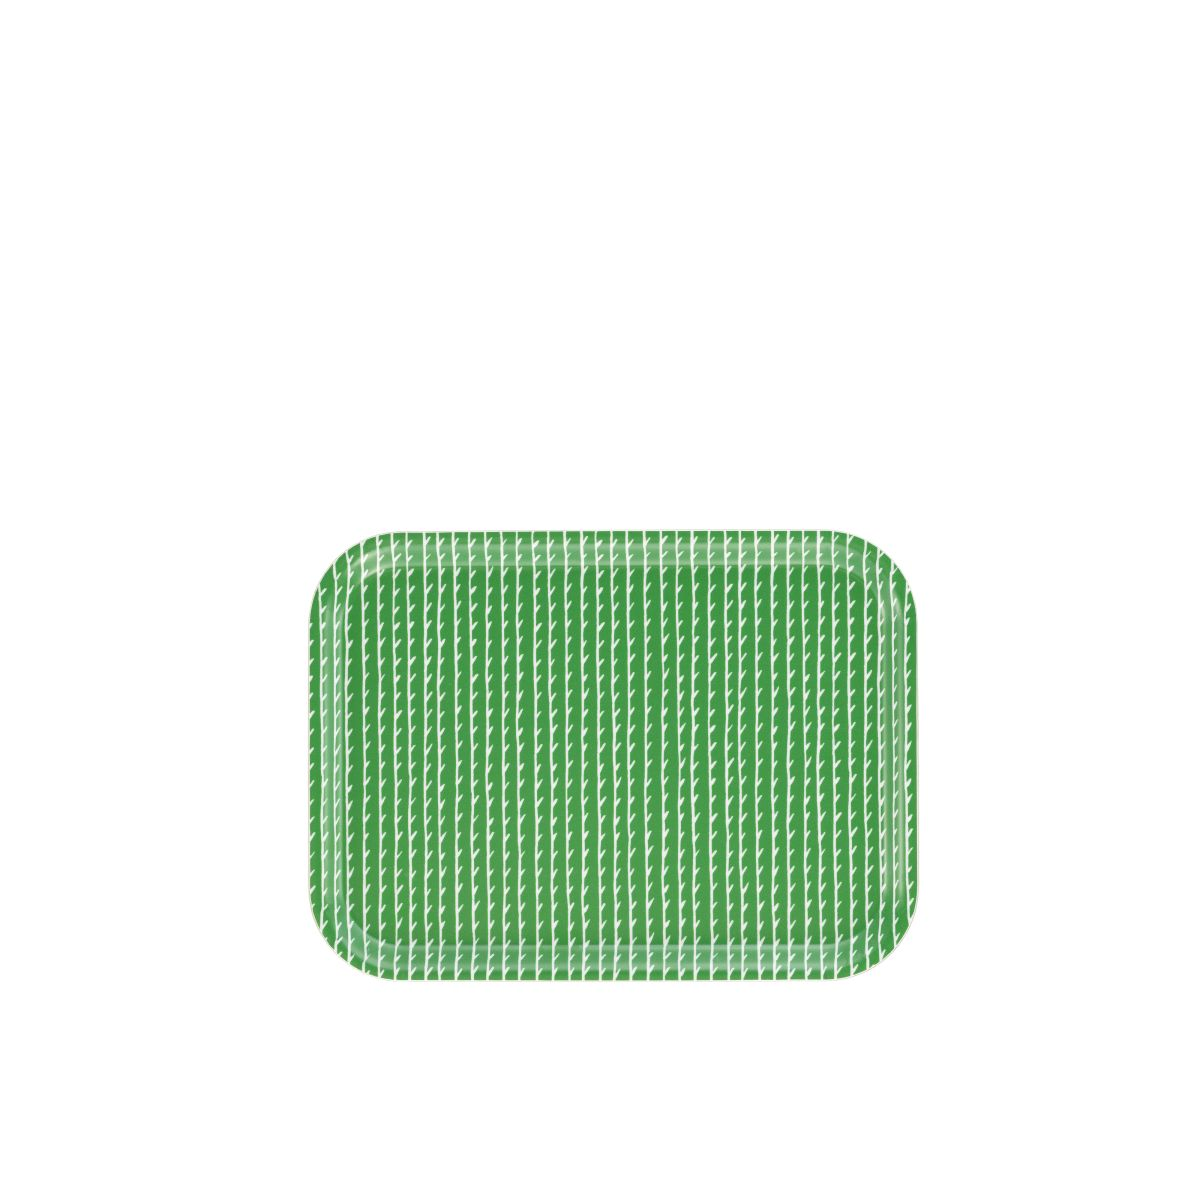 Rivi-Tray-Green-_-White-Small_F_Web-2411364